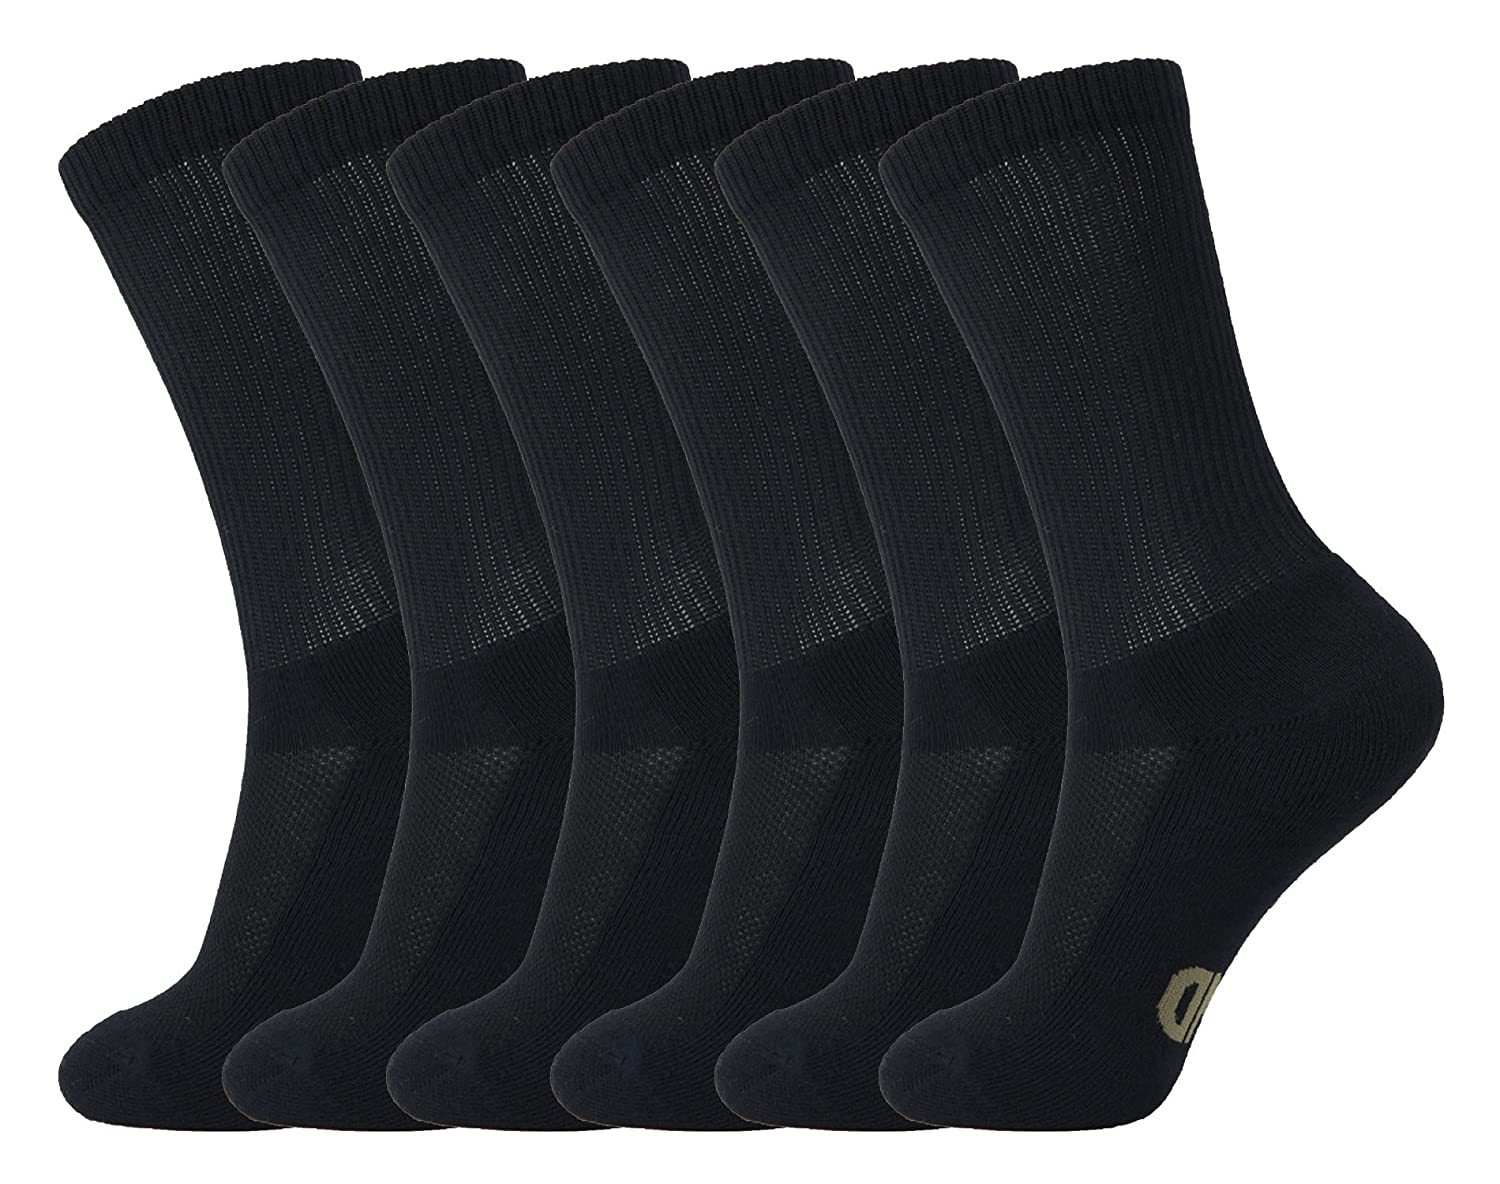 MD Men and Women Ultra Soft Bamboo Dress Socks Seamless Toe Crew 6 Pack +MD